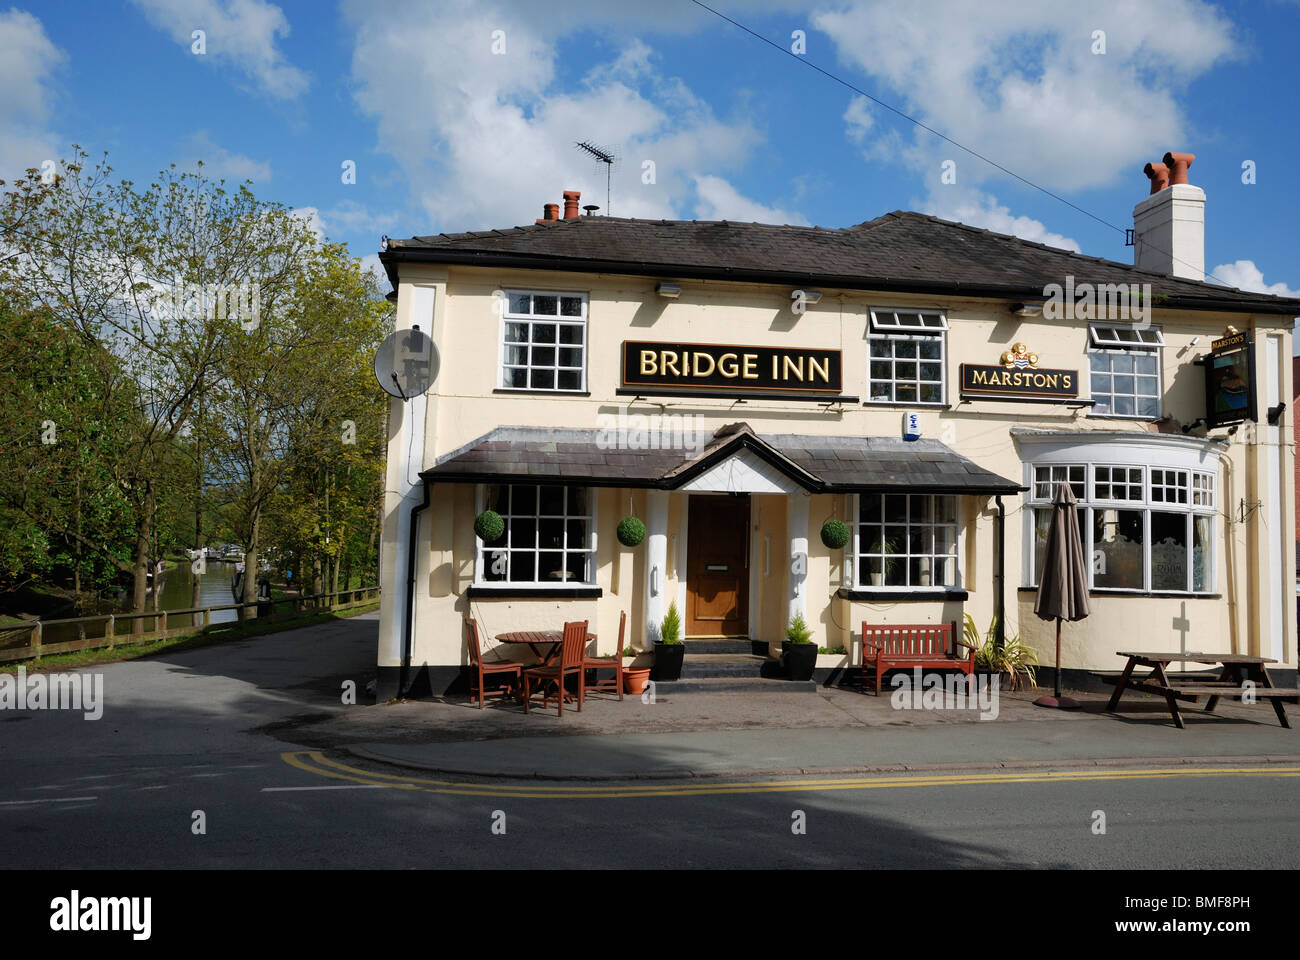 The Bridge Inn pub at the edge of the Shropshire Union Canal, Audlem, Cheshire, England. - Stock Image